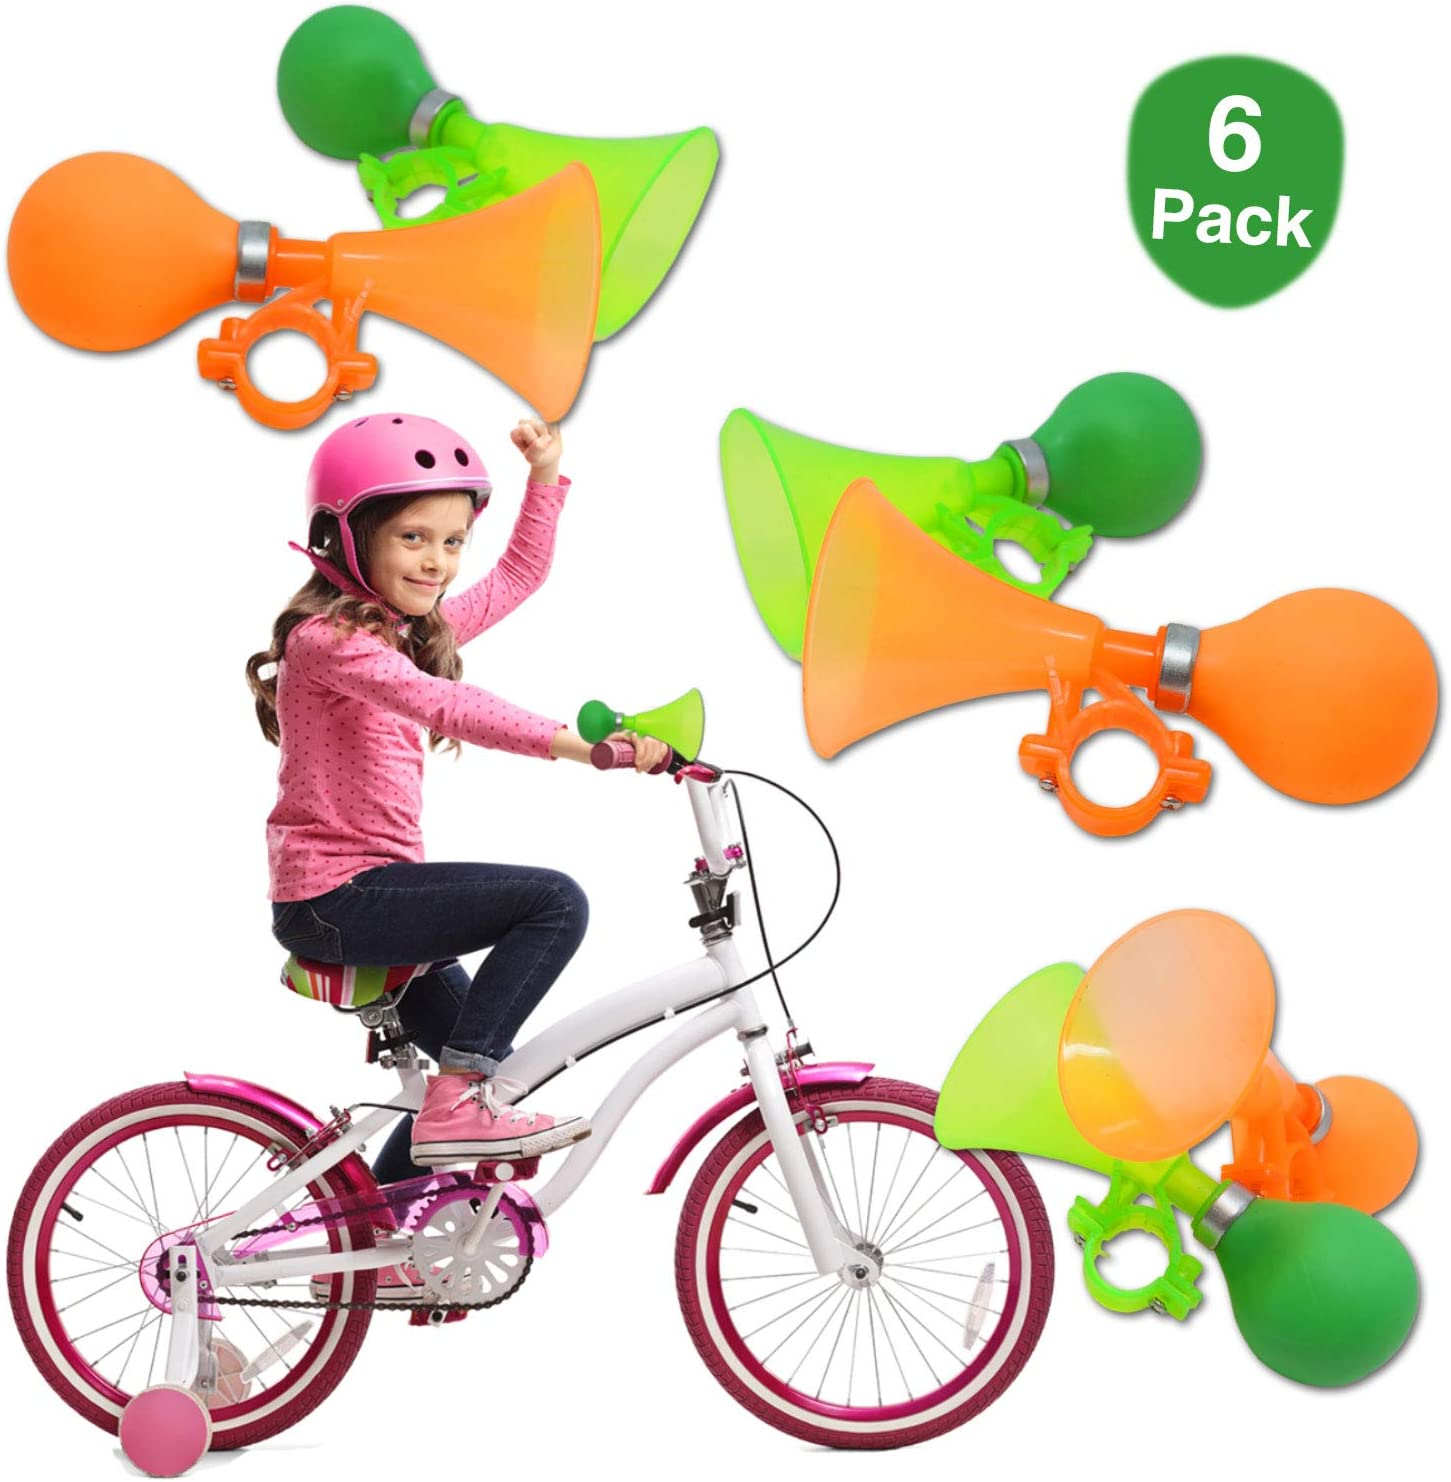 WINOMO 1pc Bicycle Horn Bell Flower Shaped Handlebar Horn Bicycle Horn Bike Bell for Kids Children